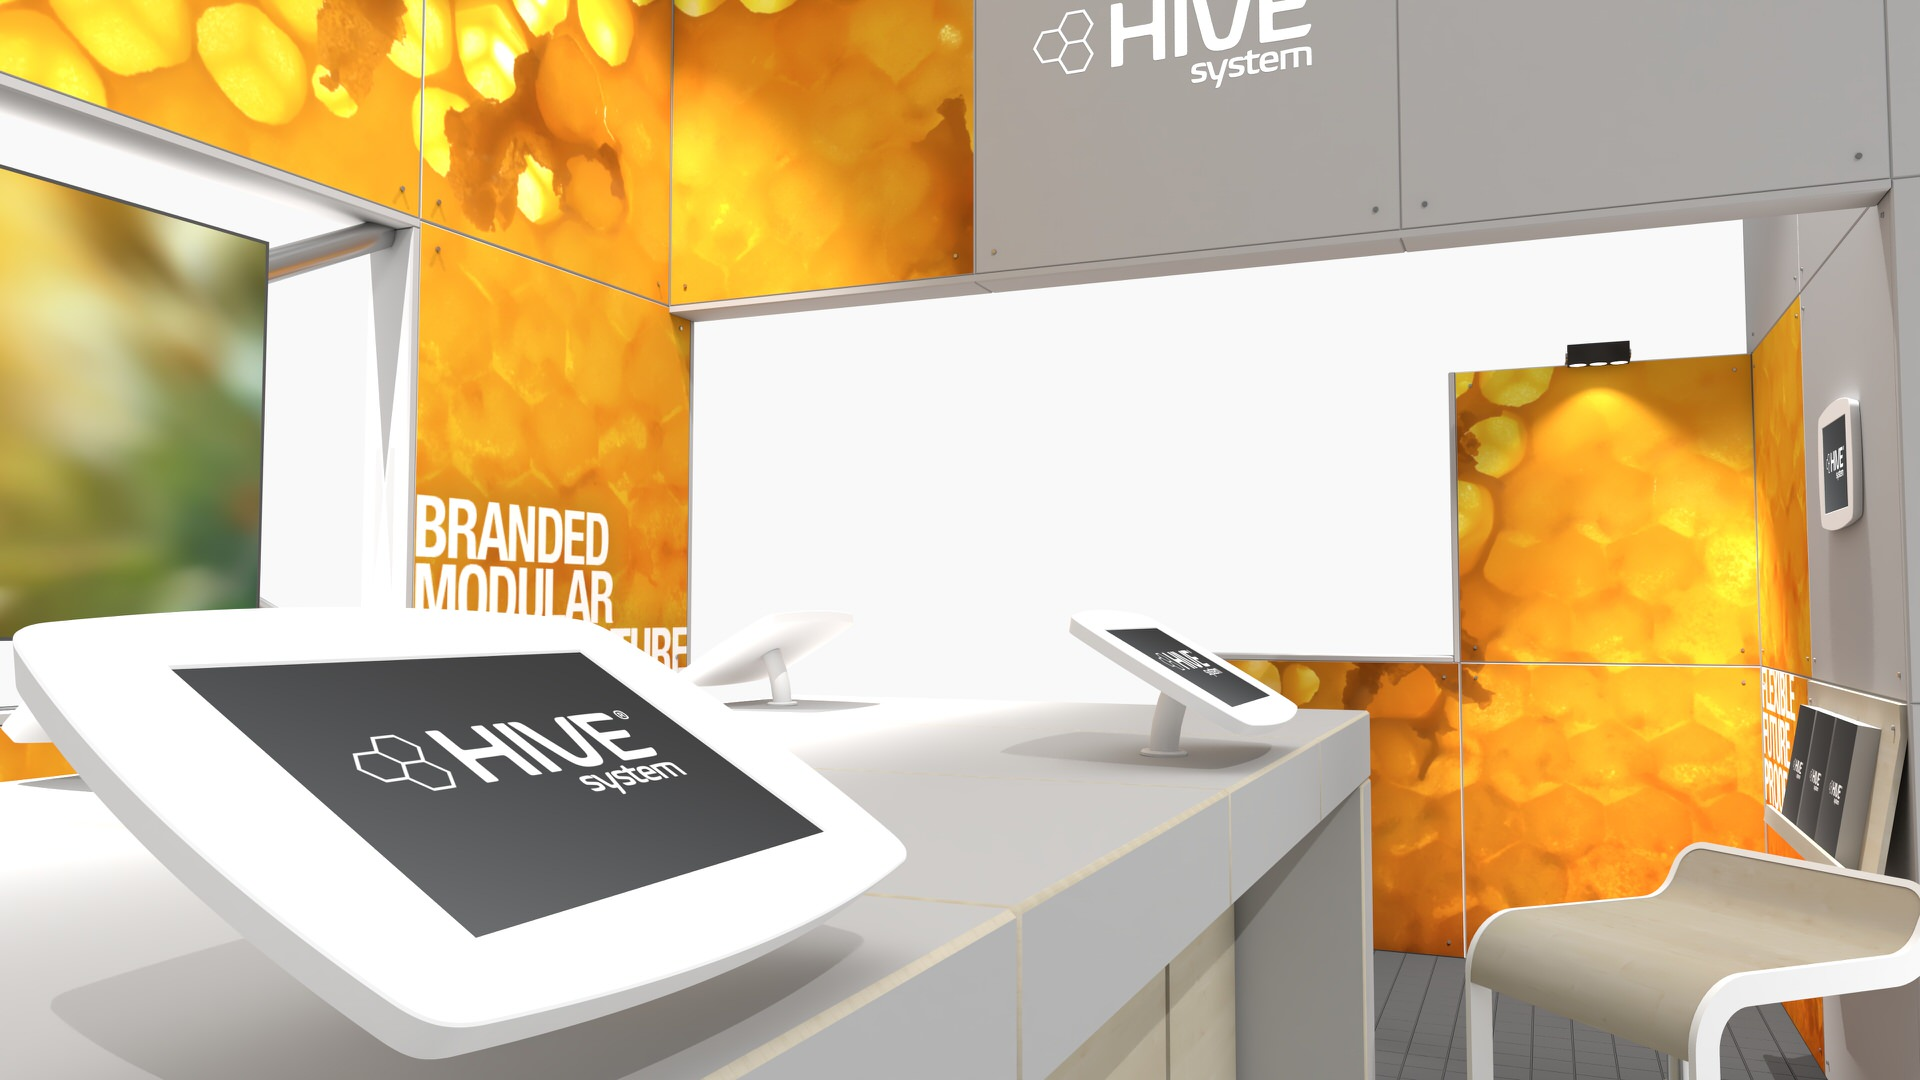 HIVE_Sustainable_Exhibition_System_05.jpeg